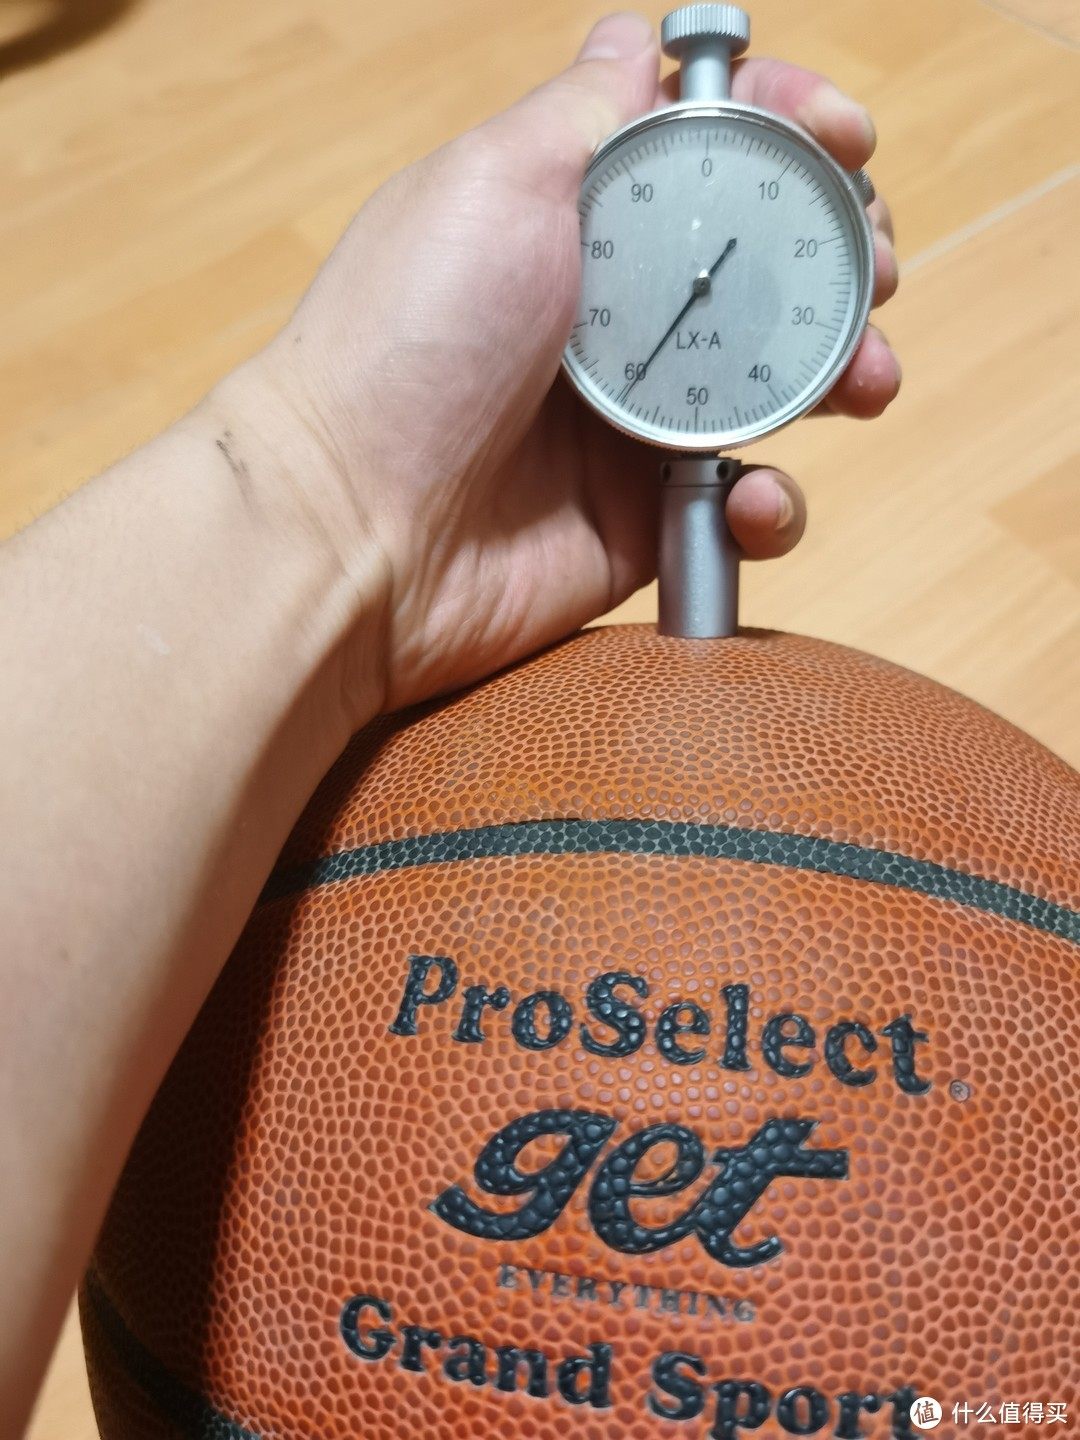 Pro select730XDEF 硬度 59-60